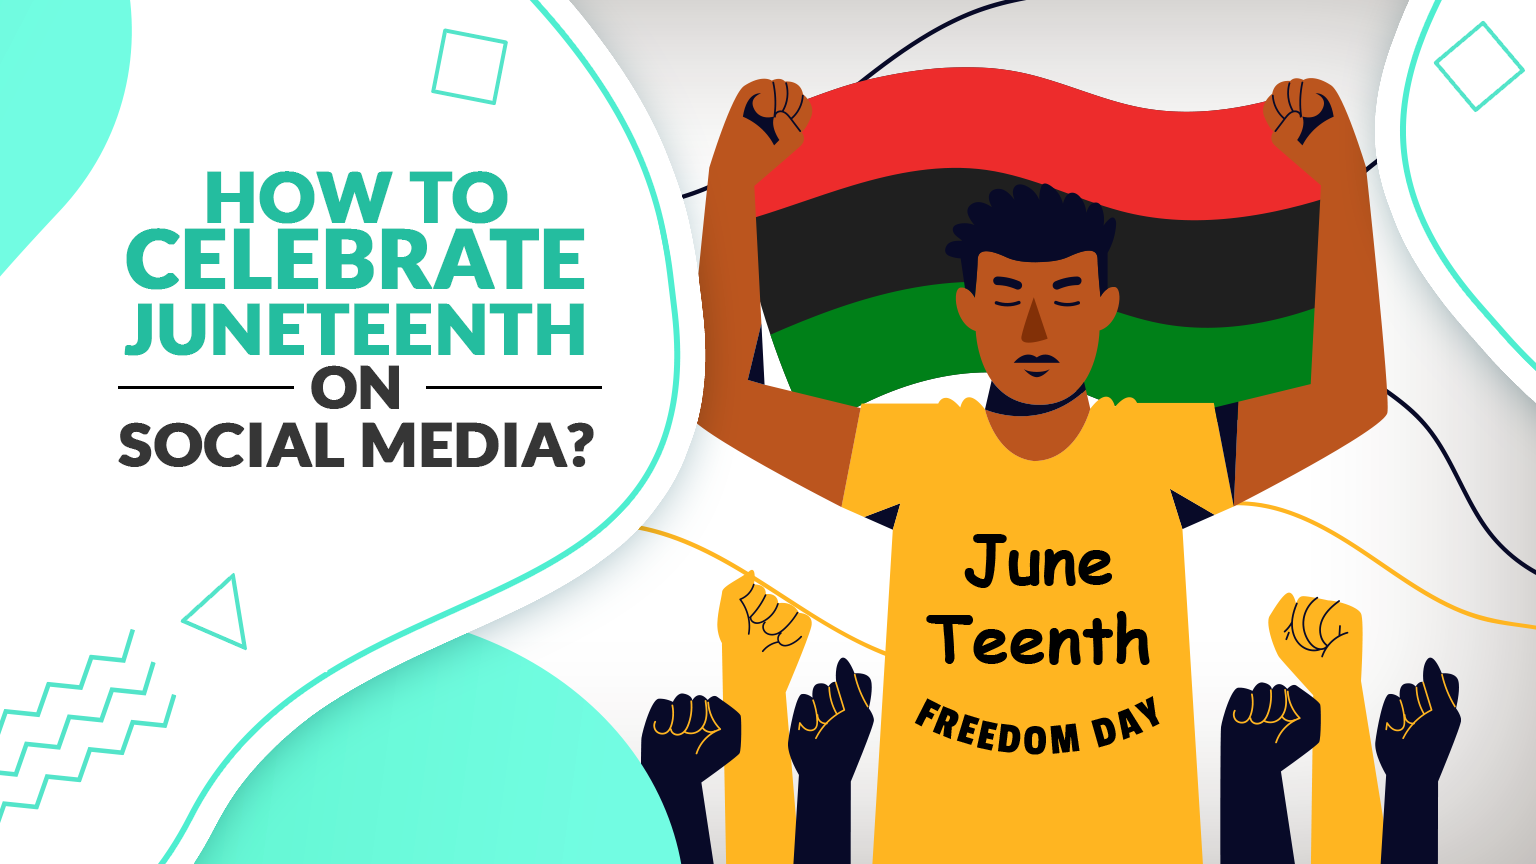 How to celebrate Juneteenth on Social Media - by Publer